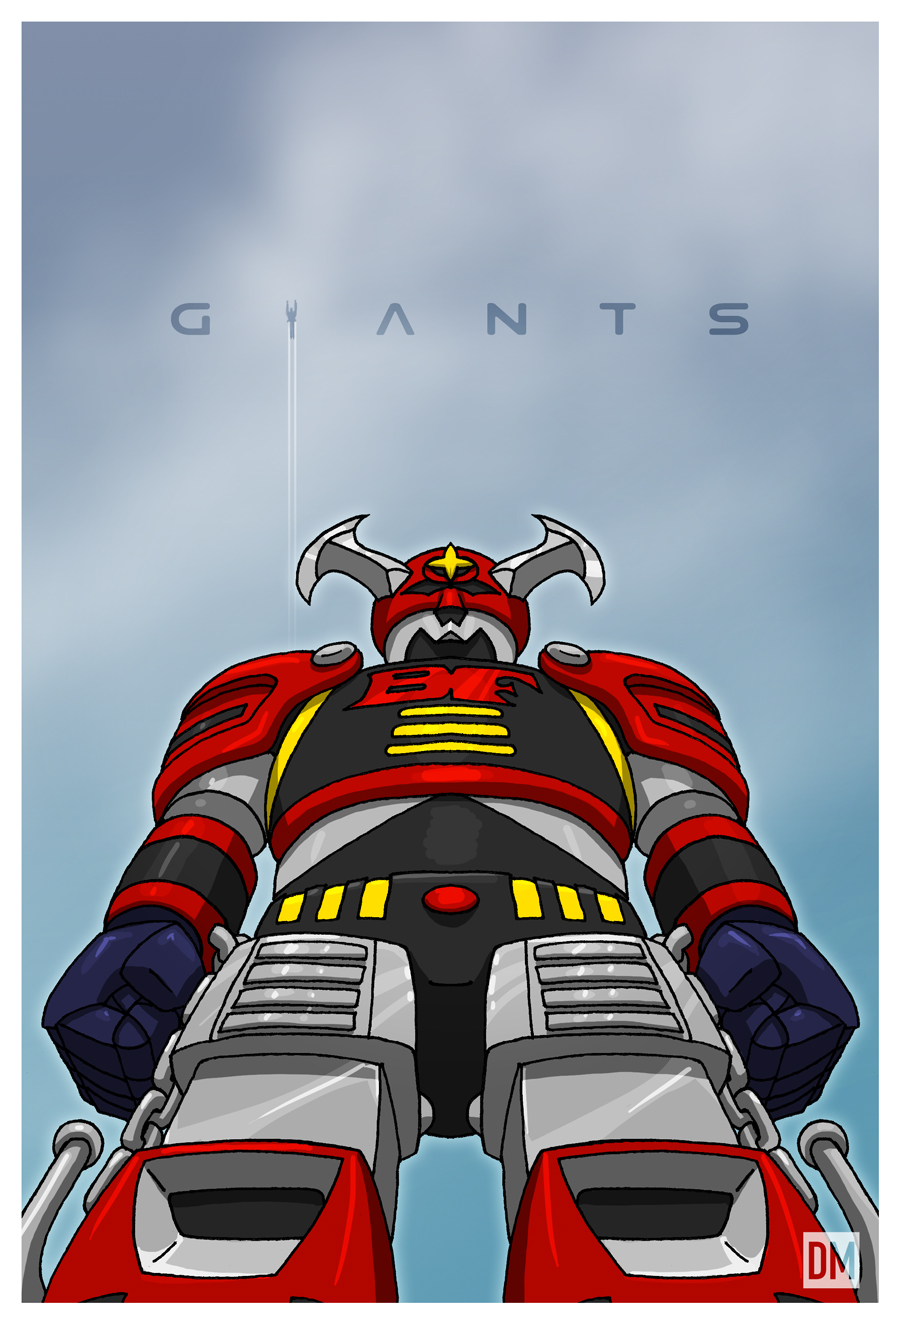 Giant - Battle Fever Robo by DanielMead